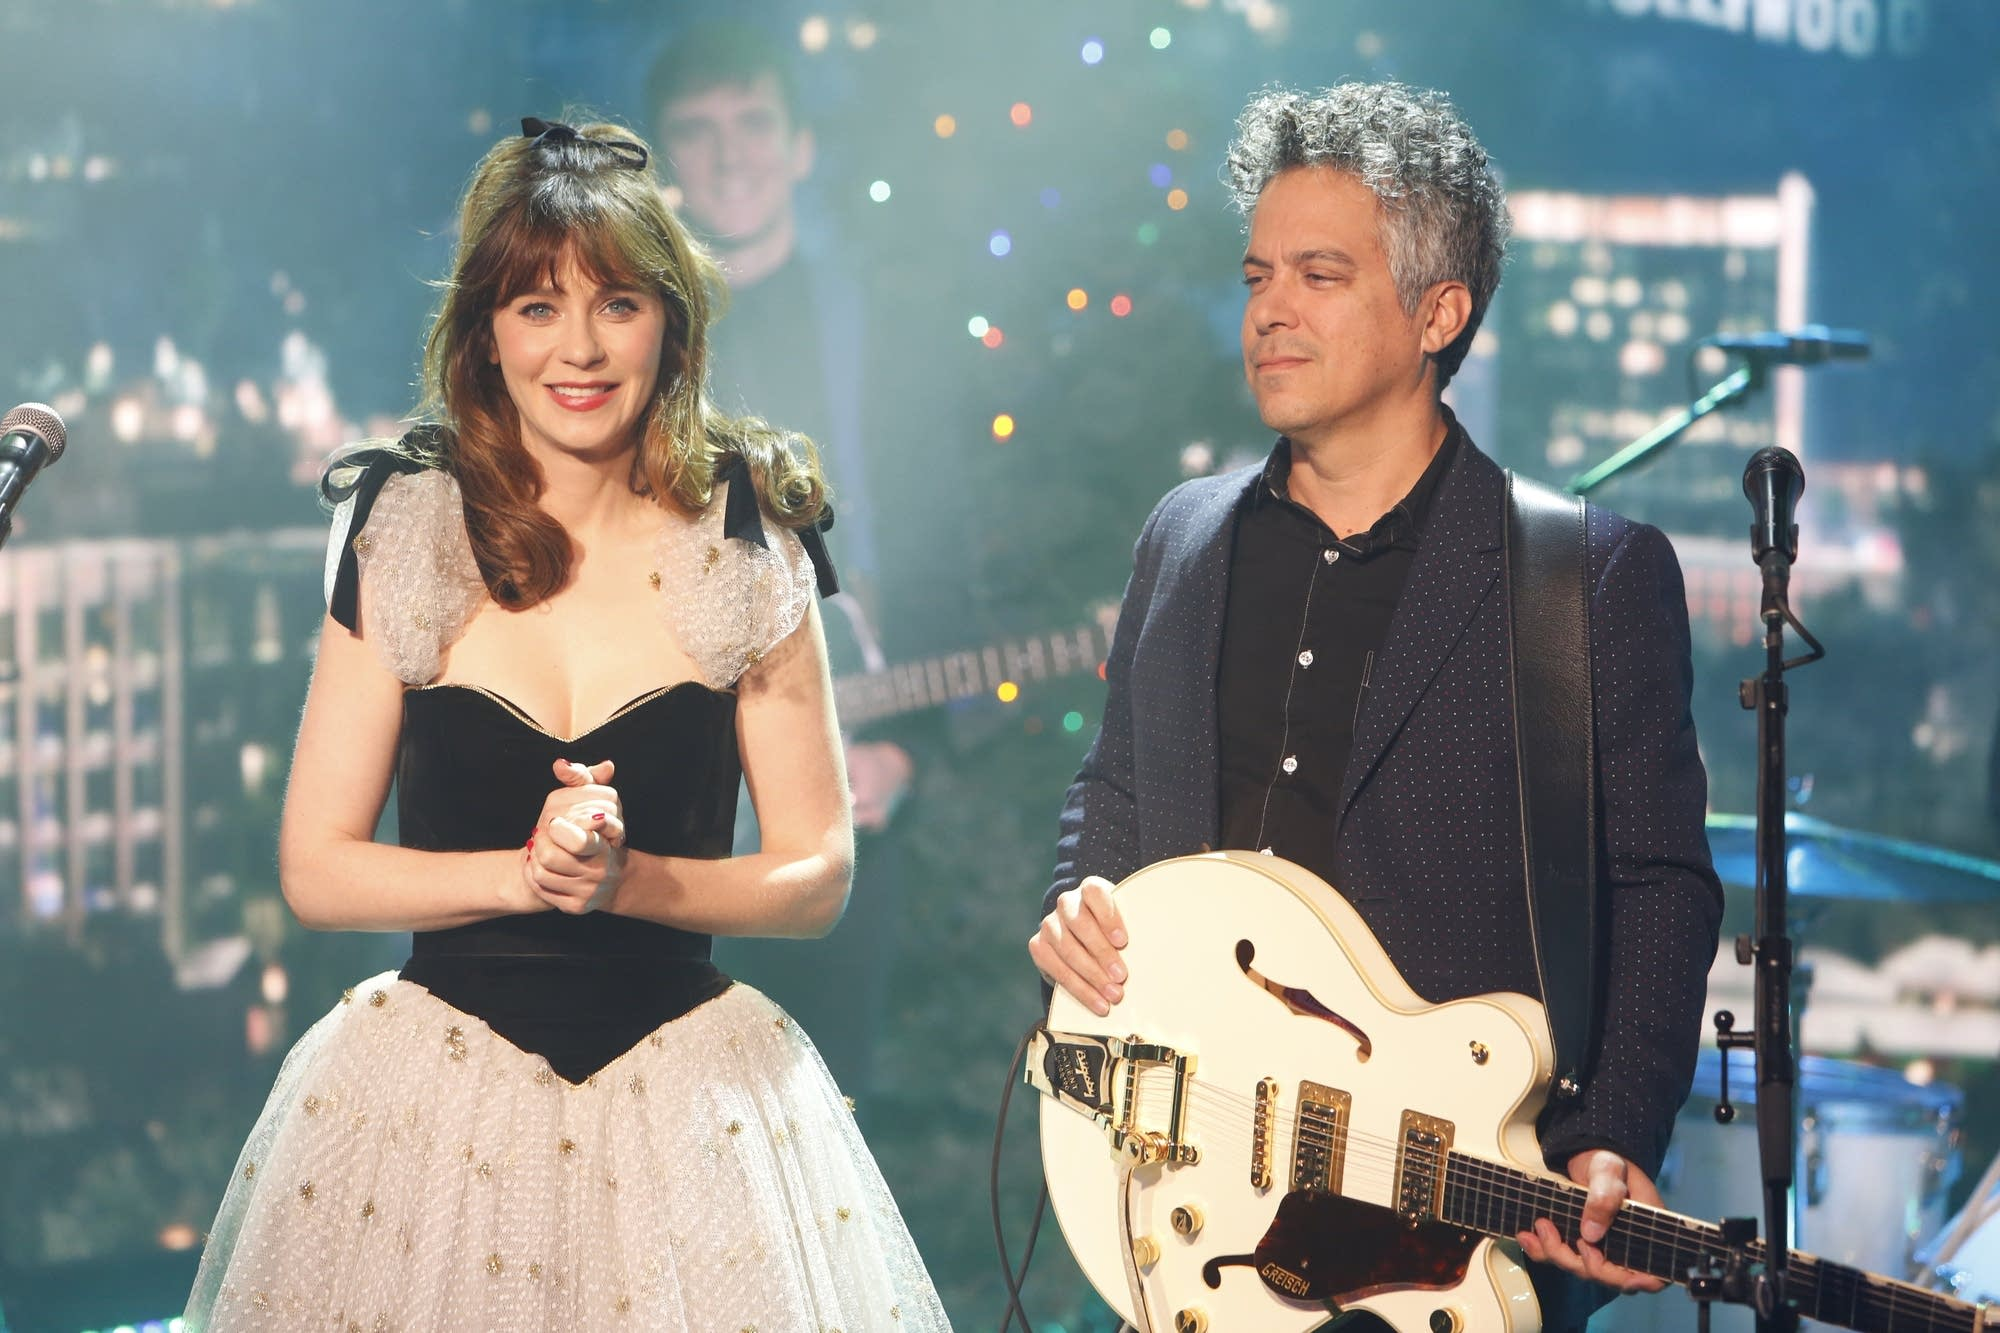 She and Him perform on 'Jimmy Kimmel Live' on ABC